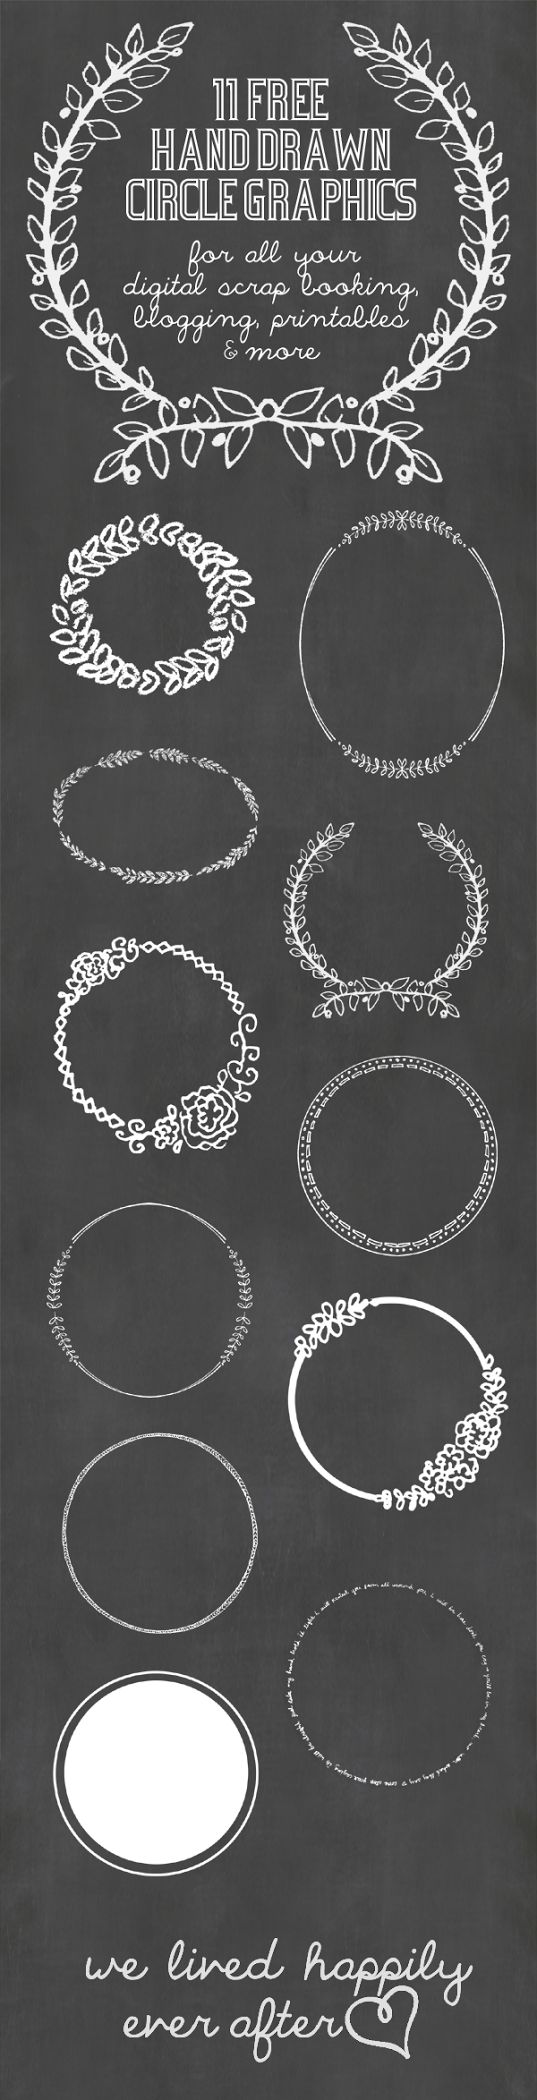 11 Free Hand Drawn Circle Digital Graphics